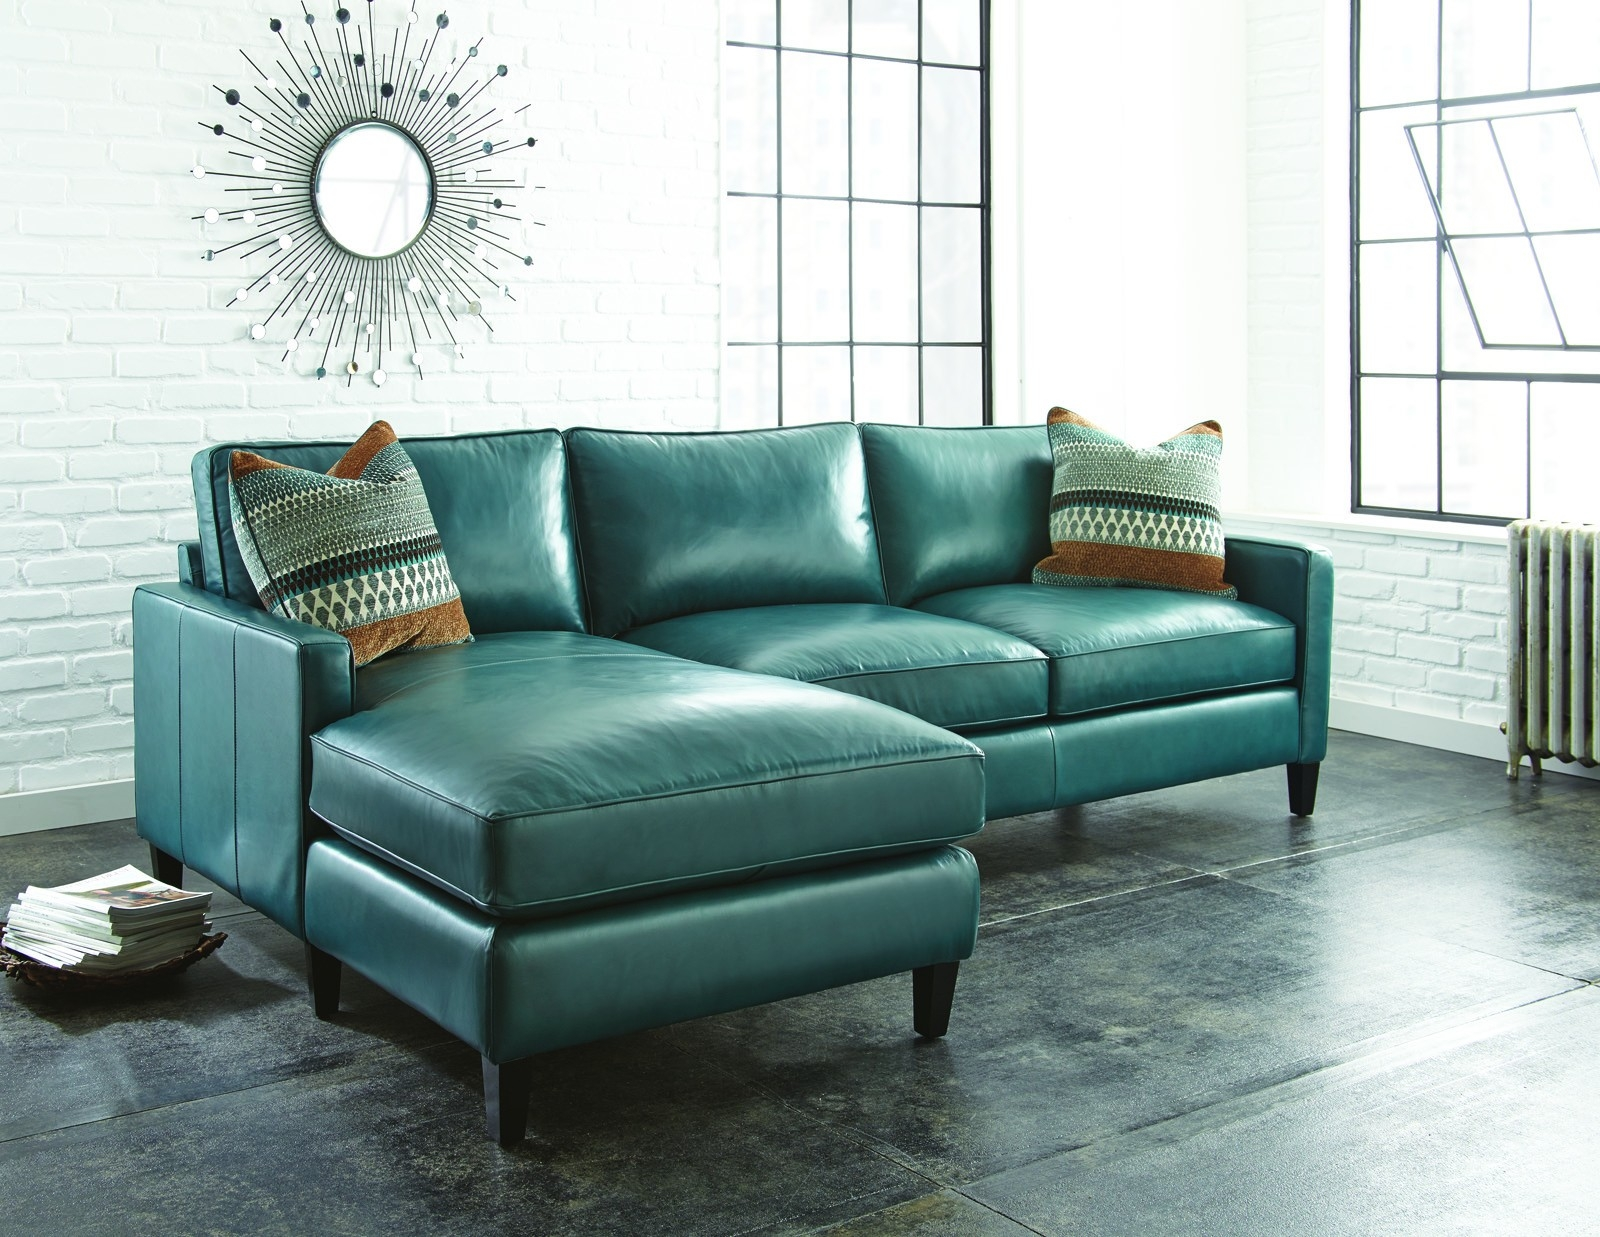 reupholster leather sofa sectional sofas for under 1000 15 43 expensive ideas